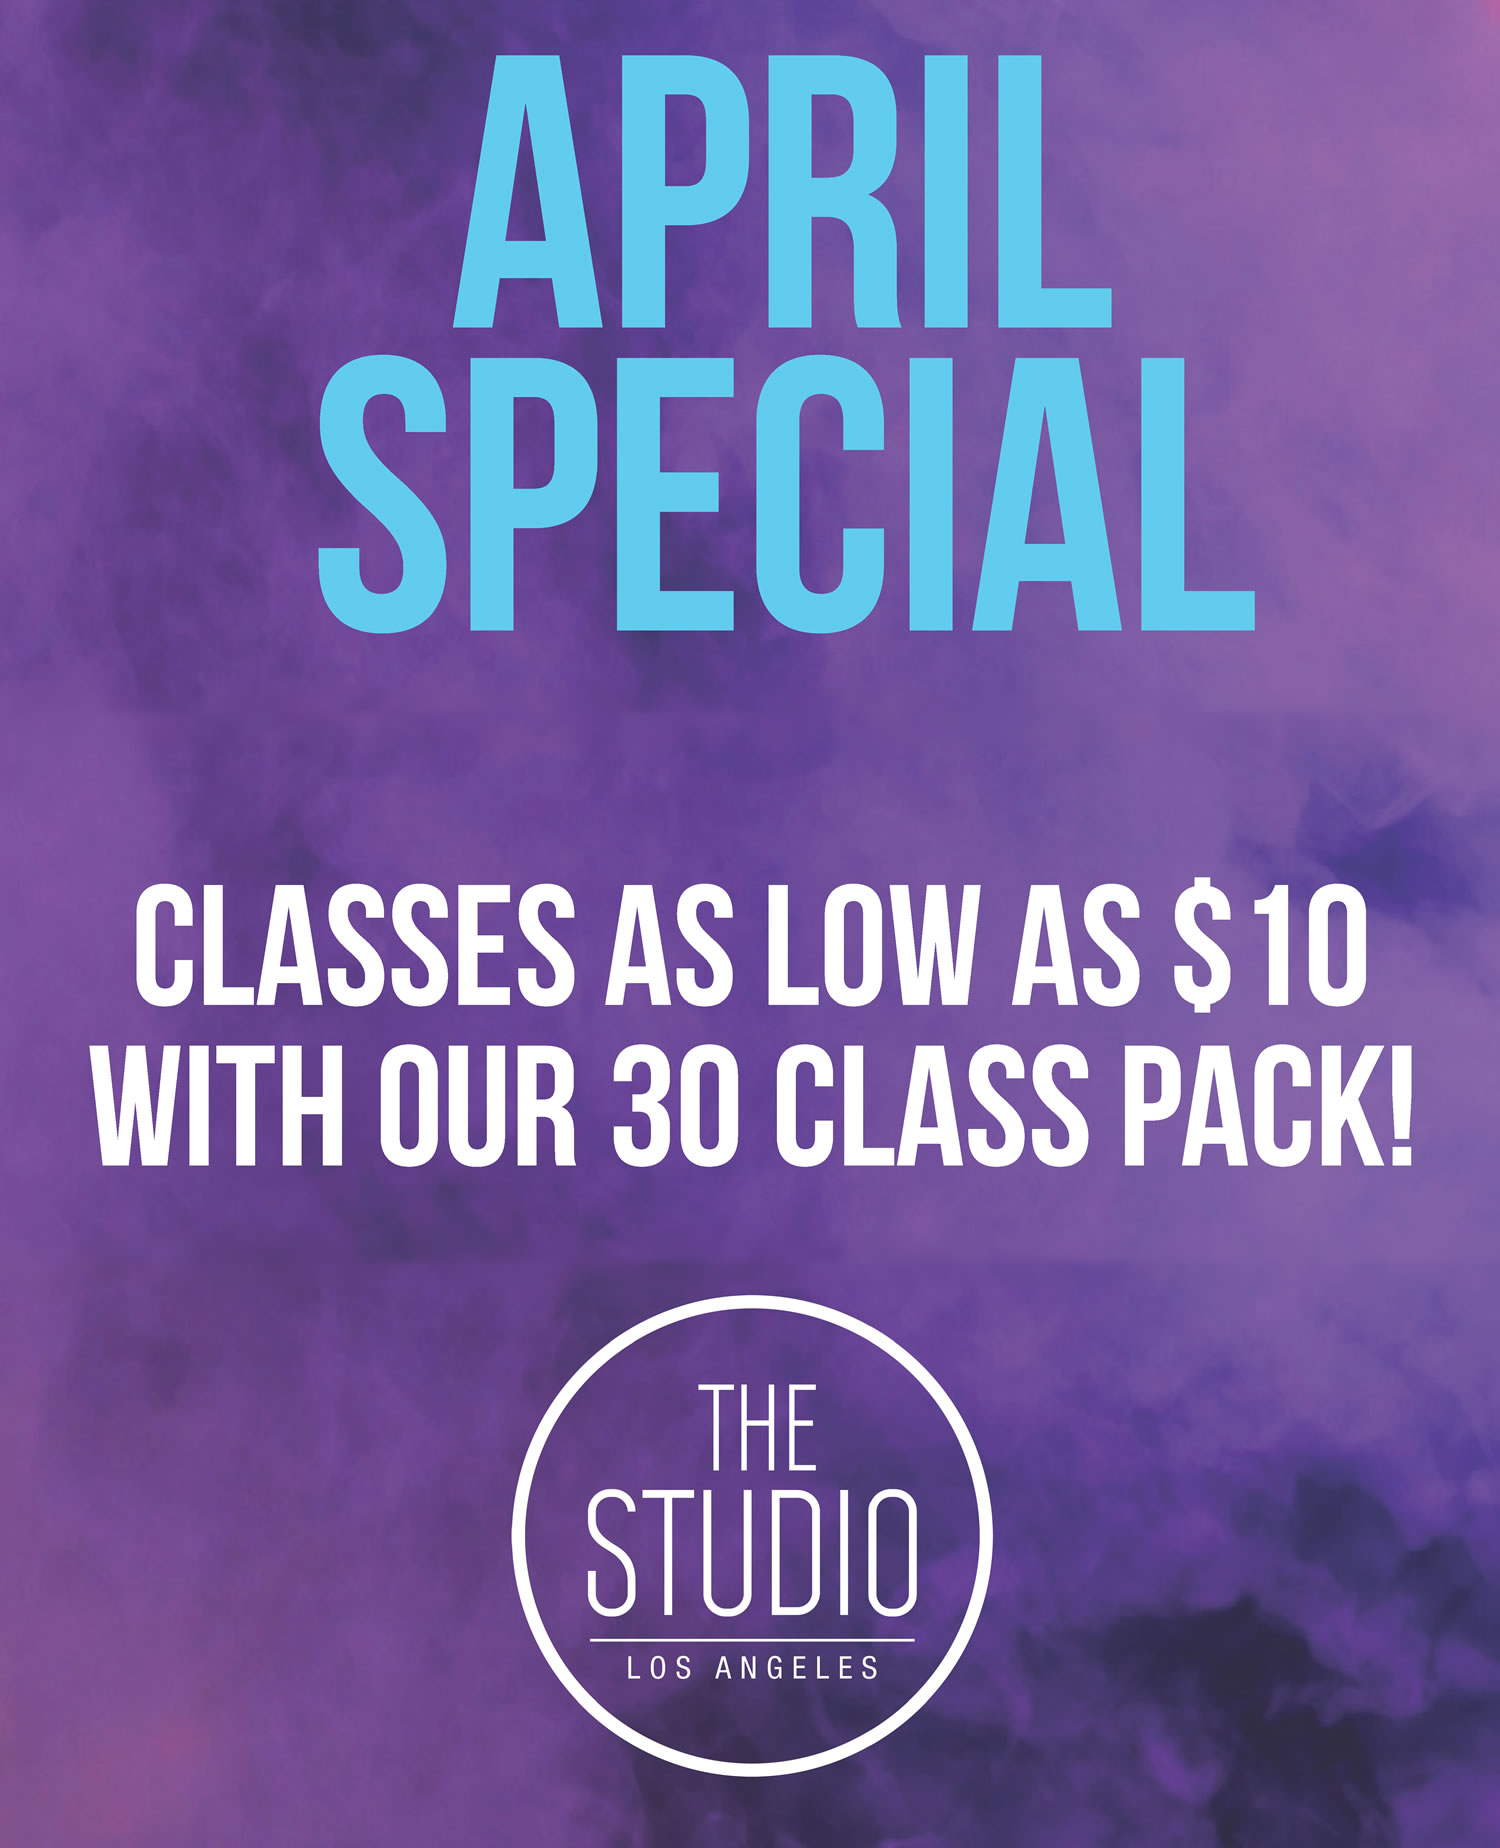 April Special at The Studio Los Angeles